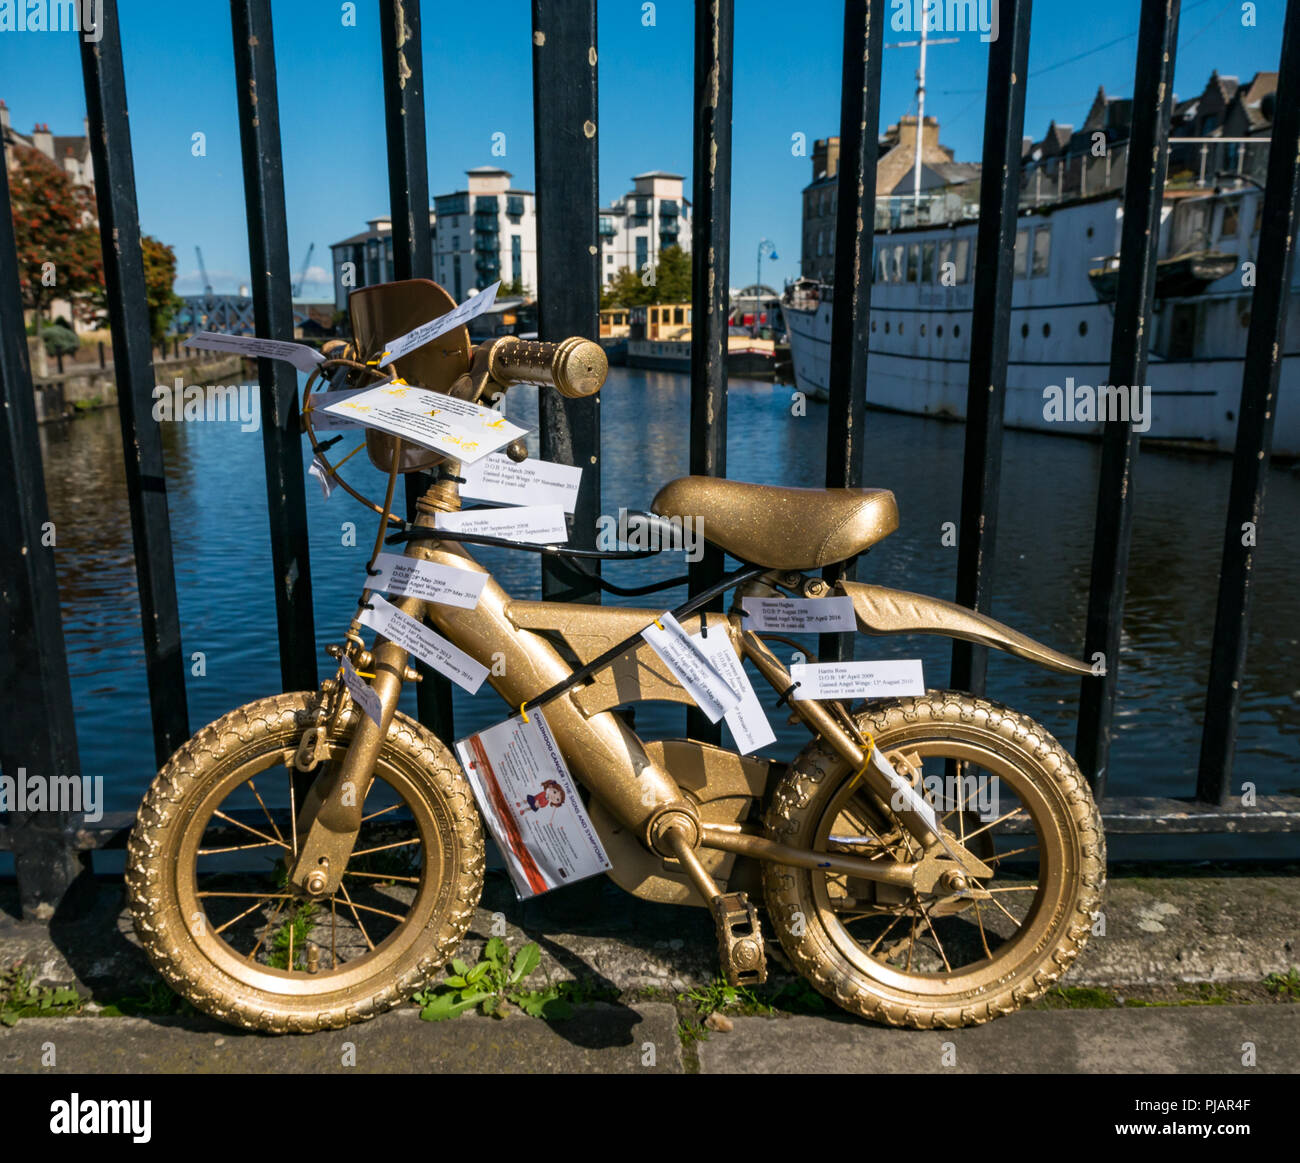 Message on gold painted child's bicycle, The Shore, Leith, Scotland, UK, Glow for Gold September campaign to raise awareness of childhood cancer - Stock Image